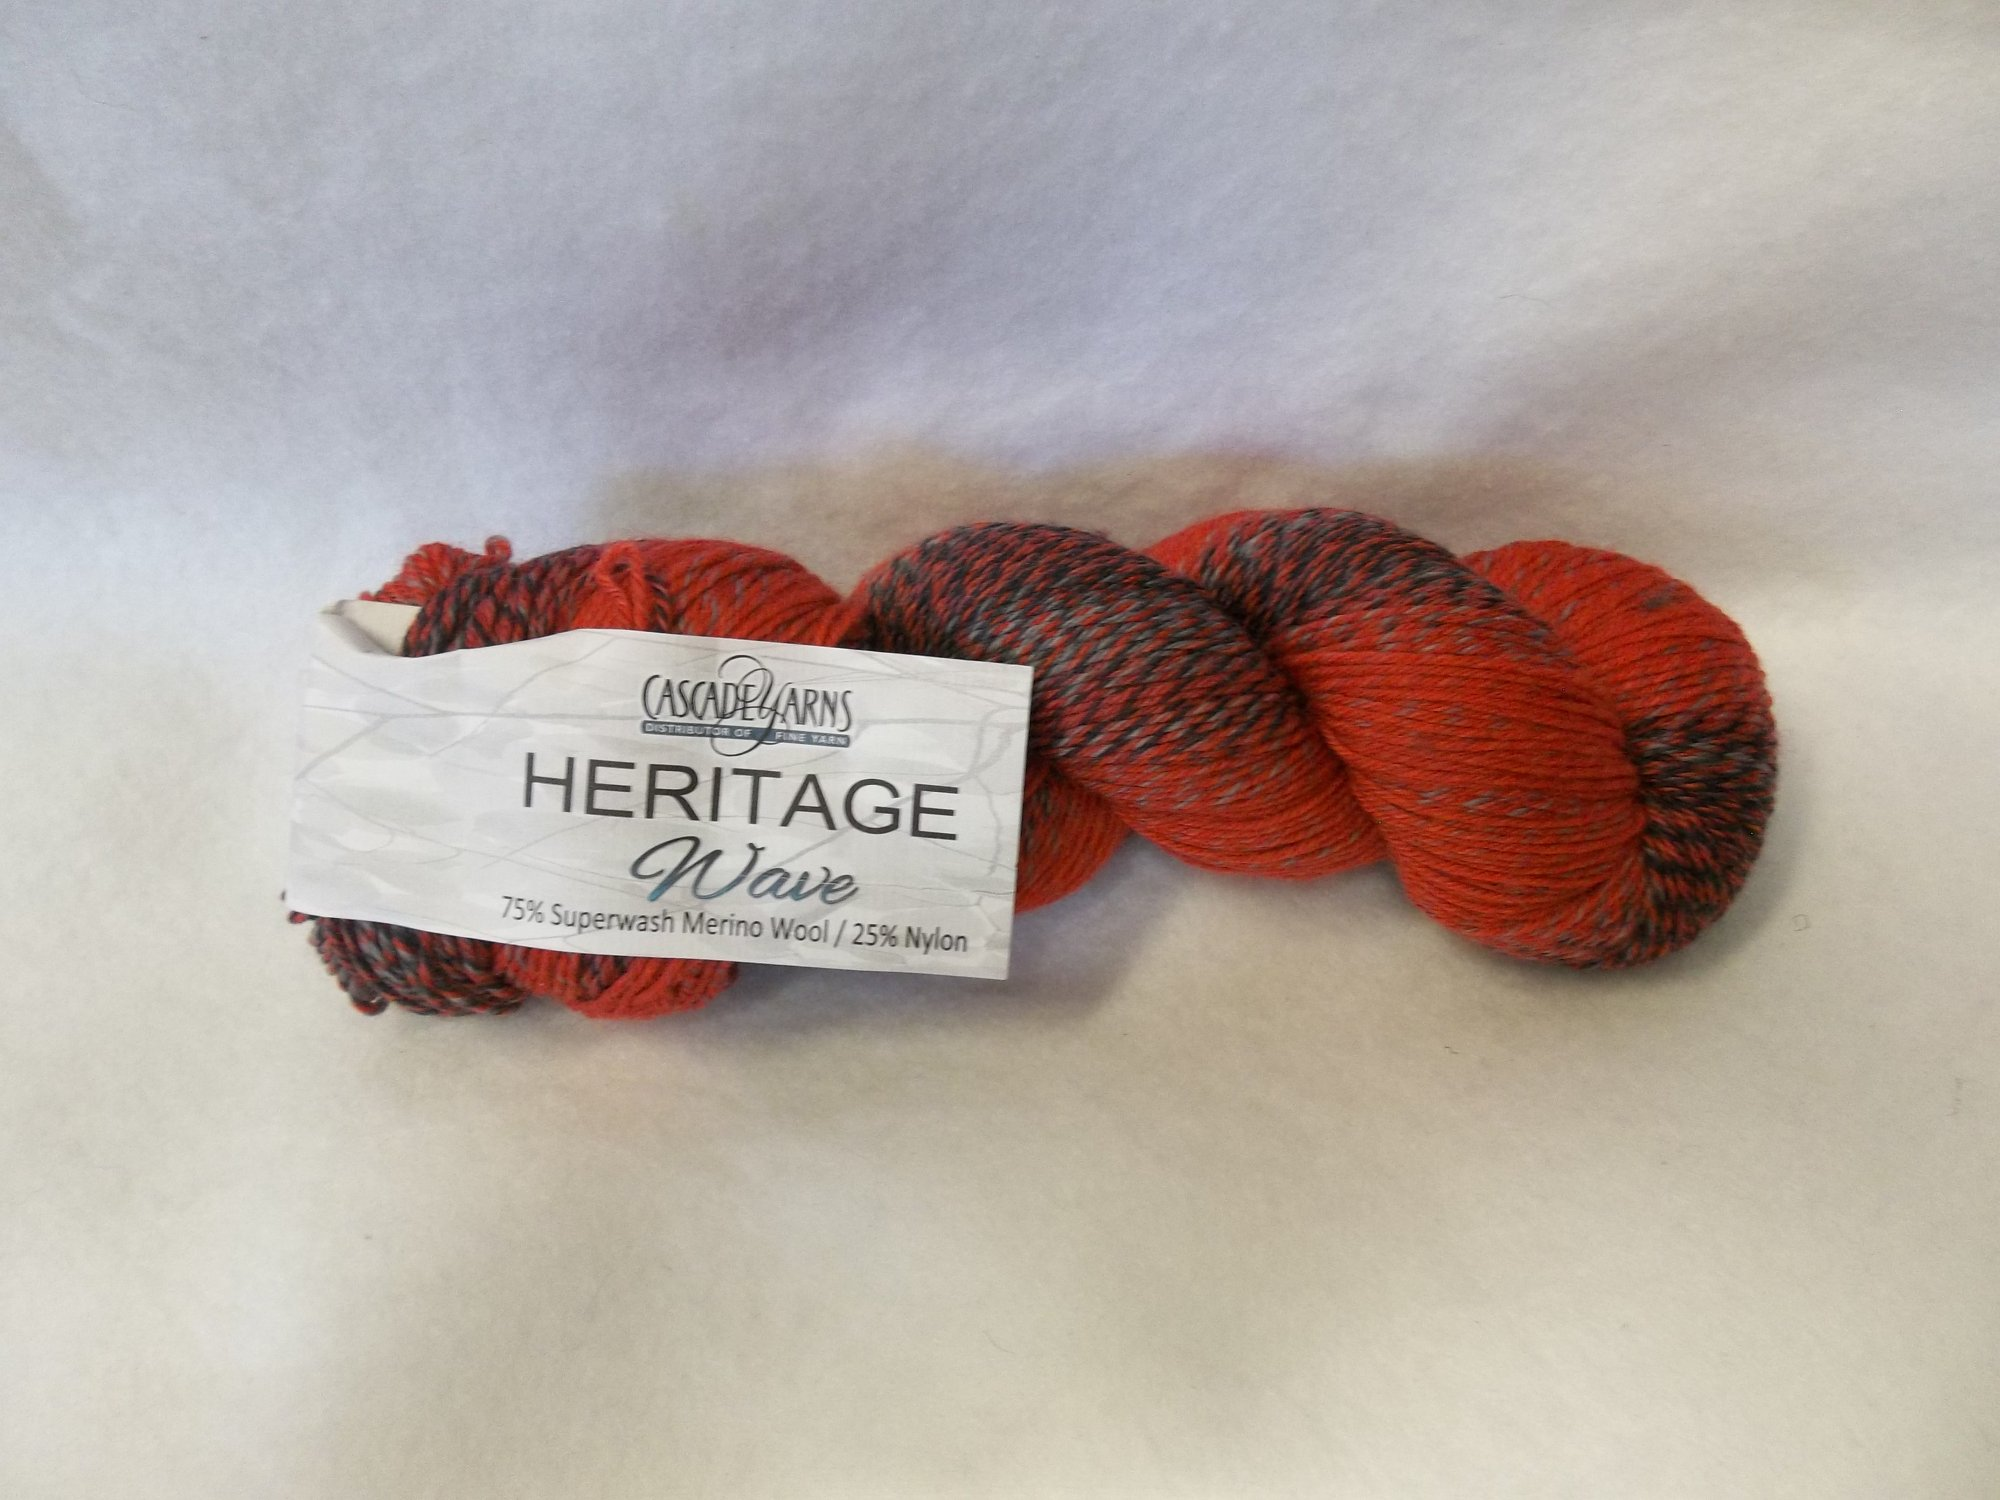 Heritage Wave Color 505 - Reds and Grays